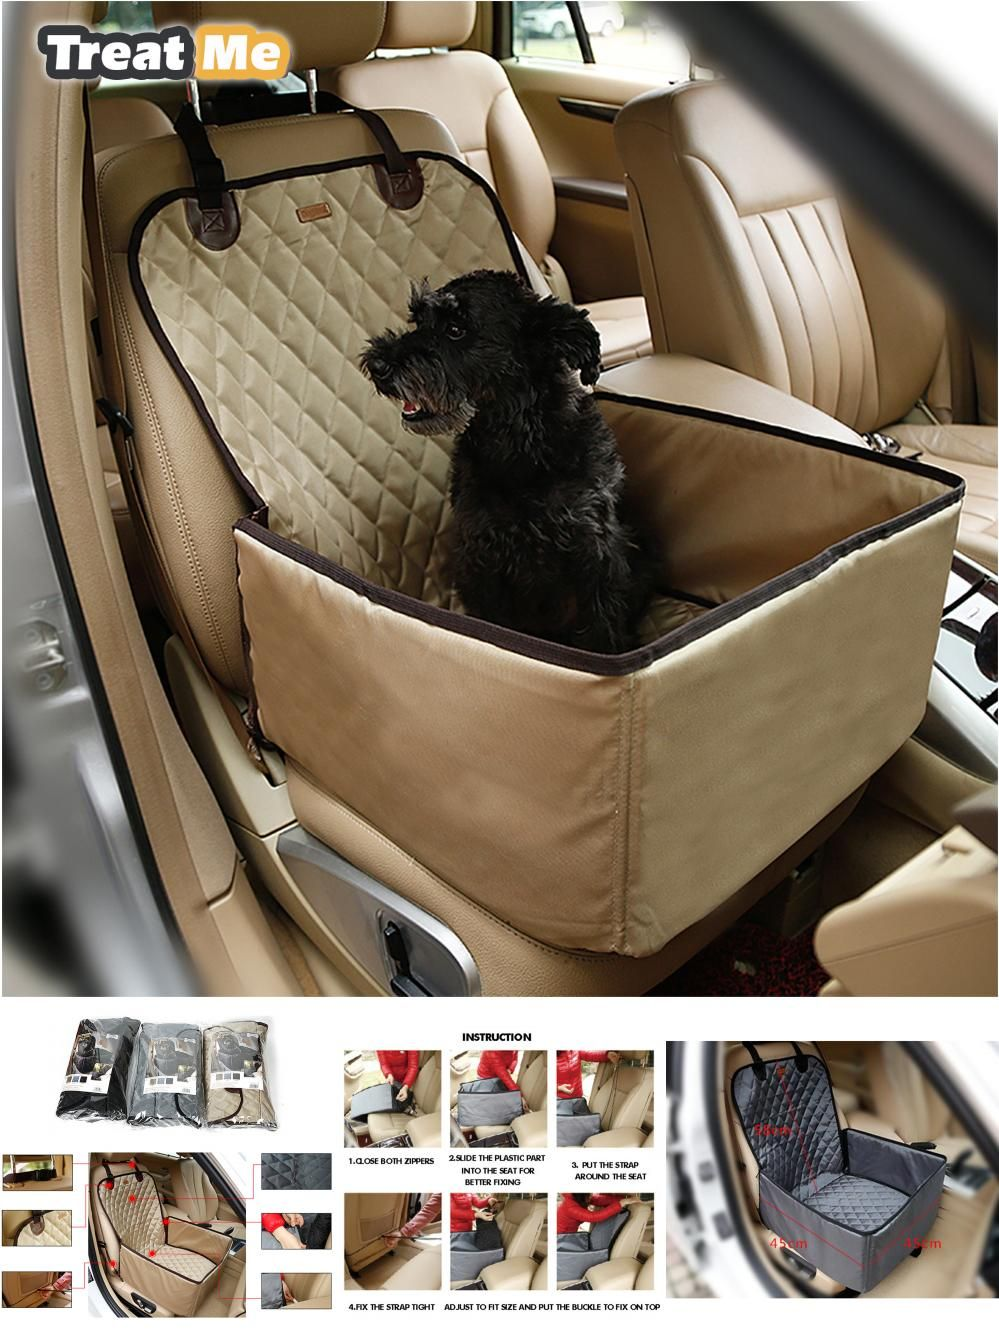 Visit to Buy] Deluxe Pet Dog Car Booster Seat Travel Dog Bster Seat ...